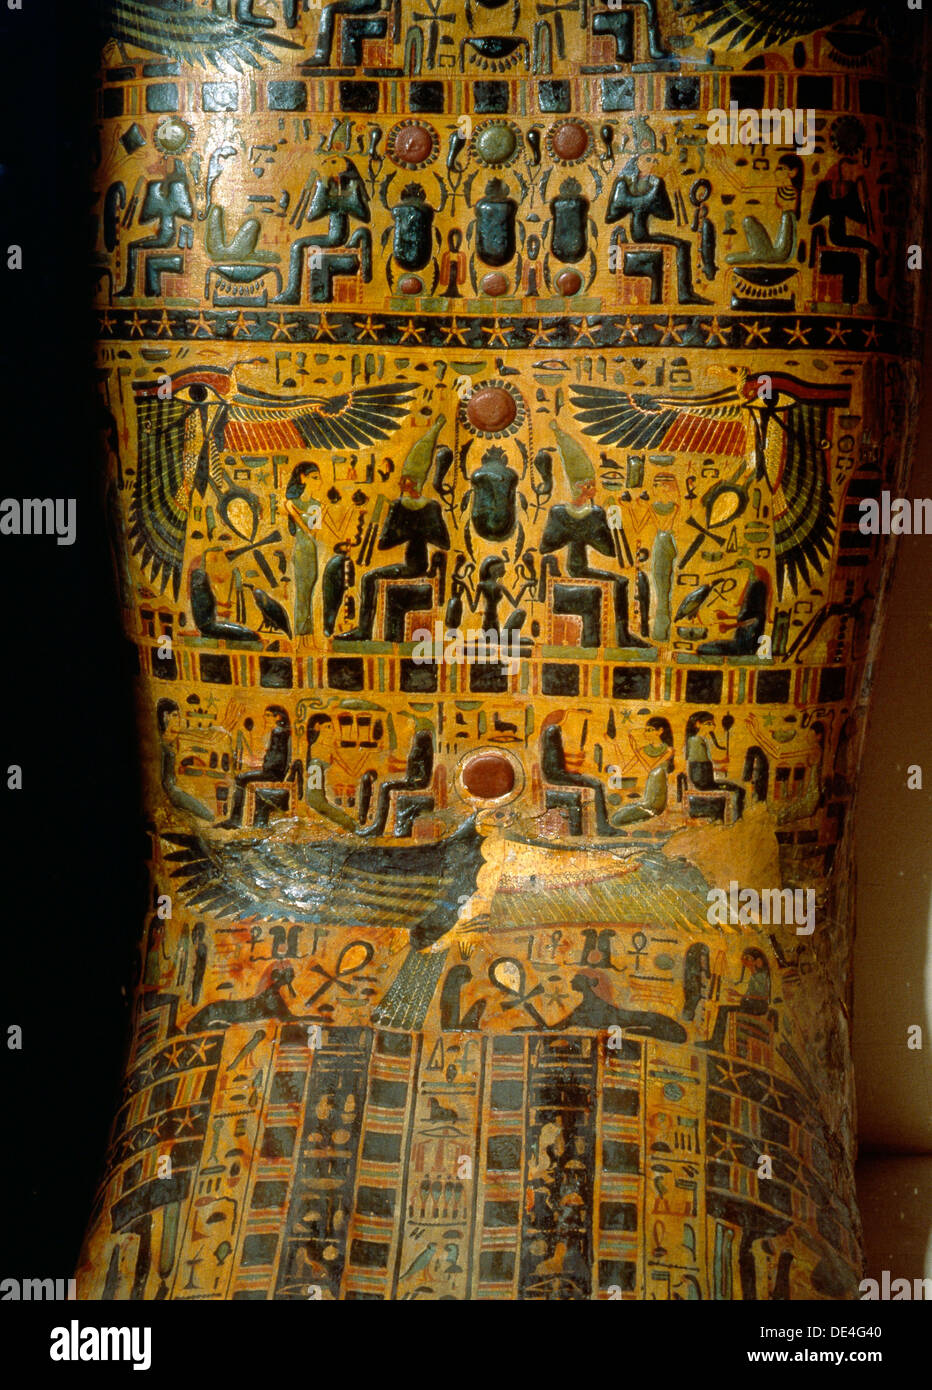 Detail of the exterior of a coffin,decorated with scenes from the Osirian and solar mythology. - Stock Image